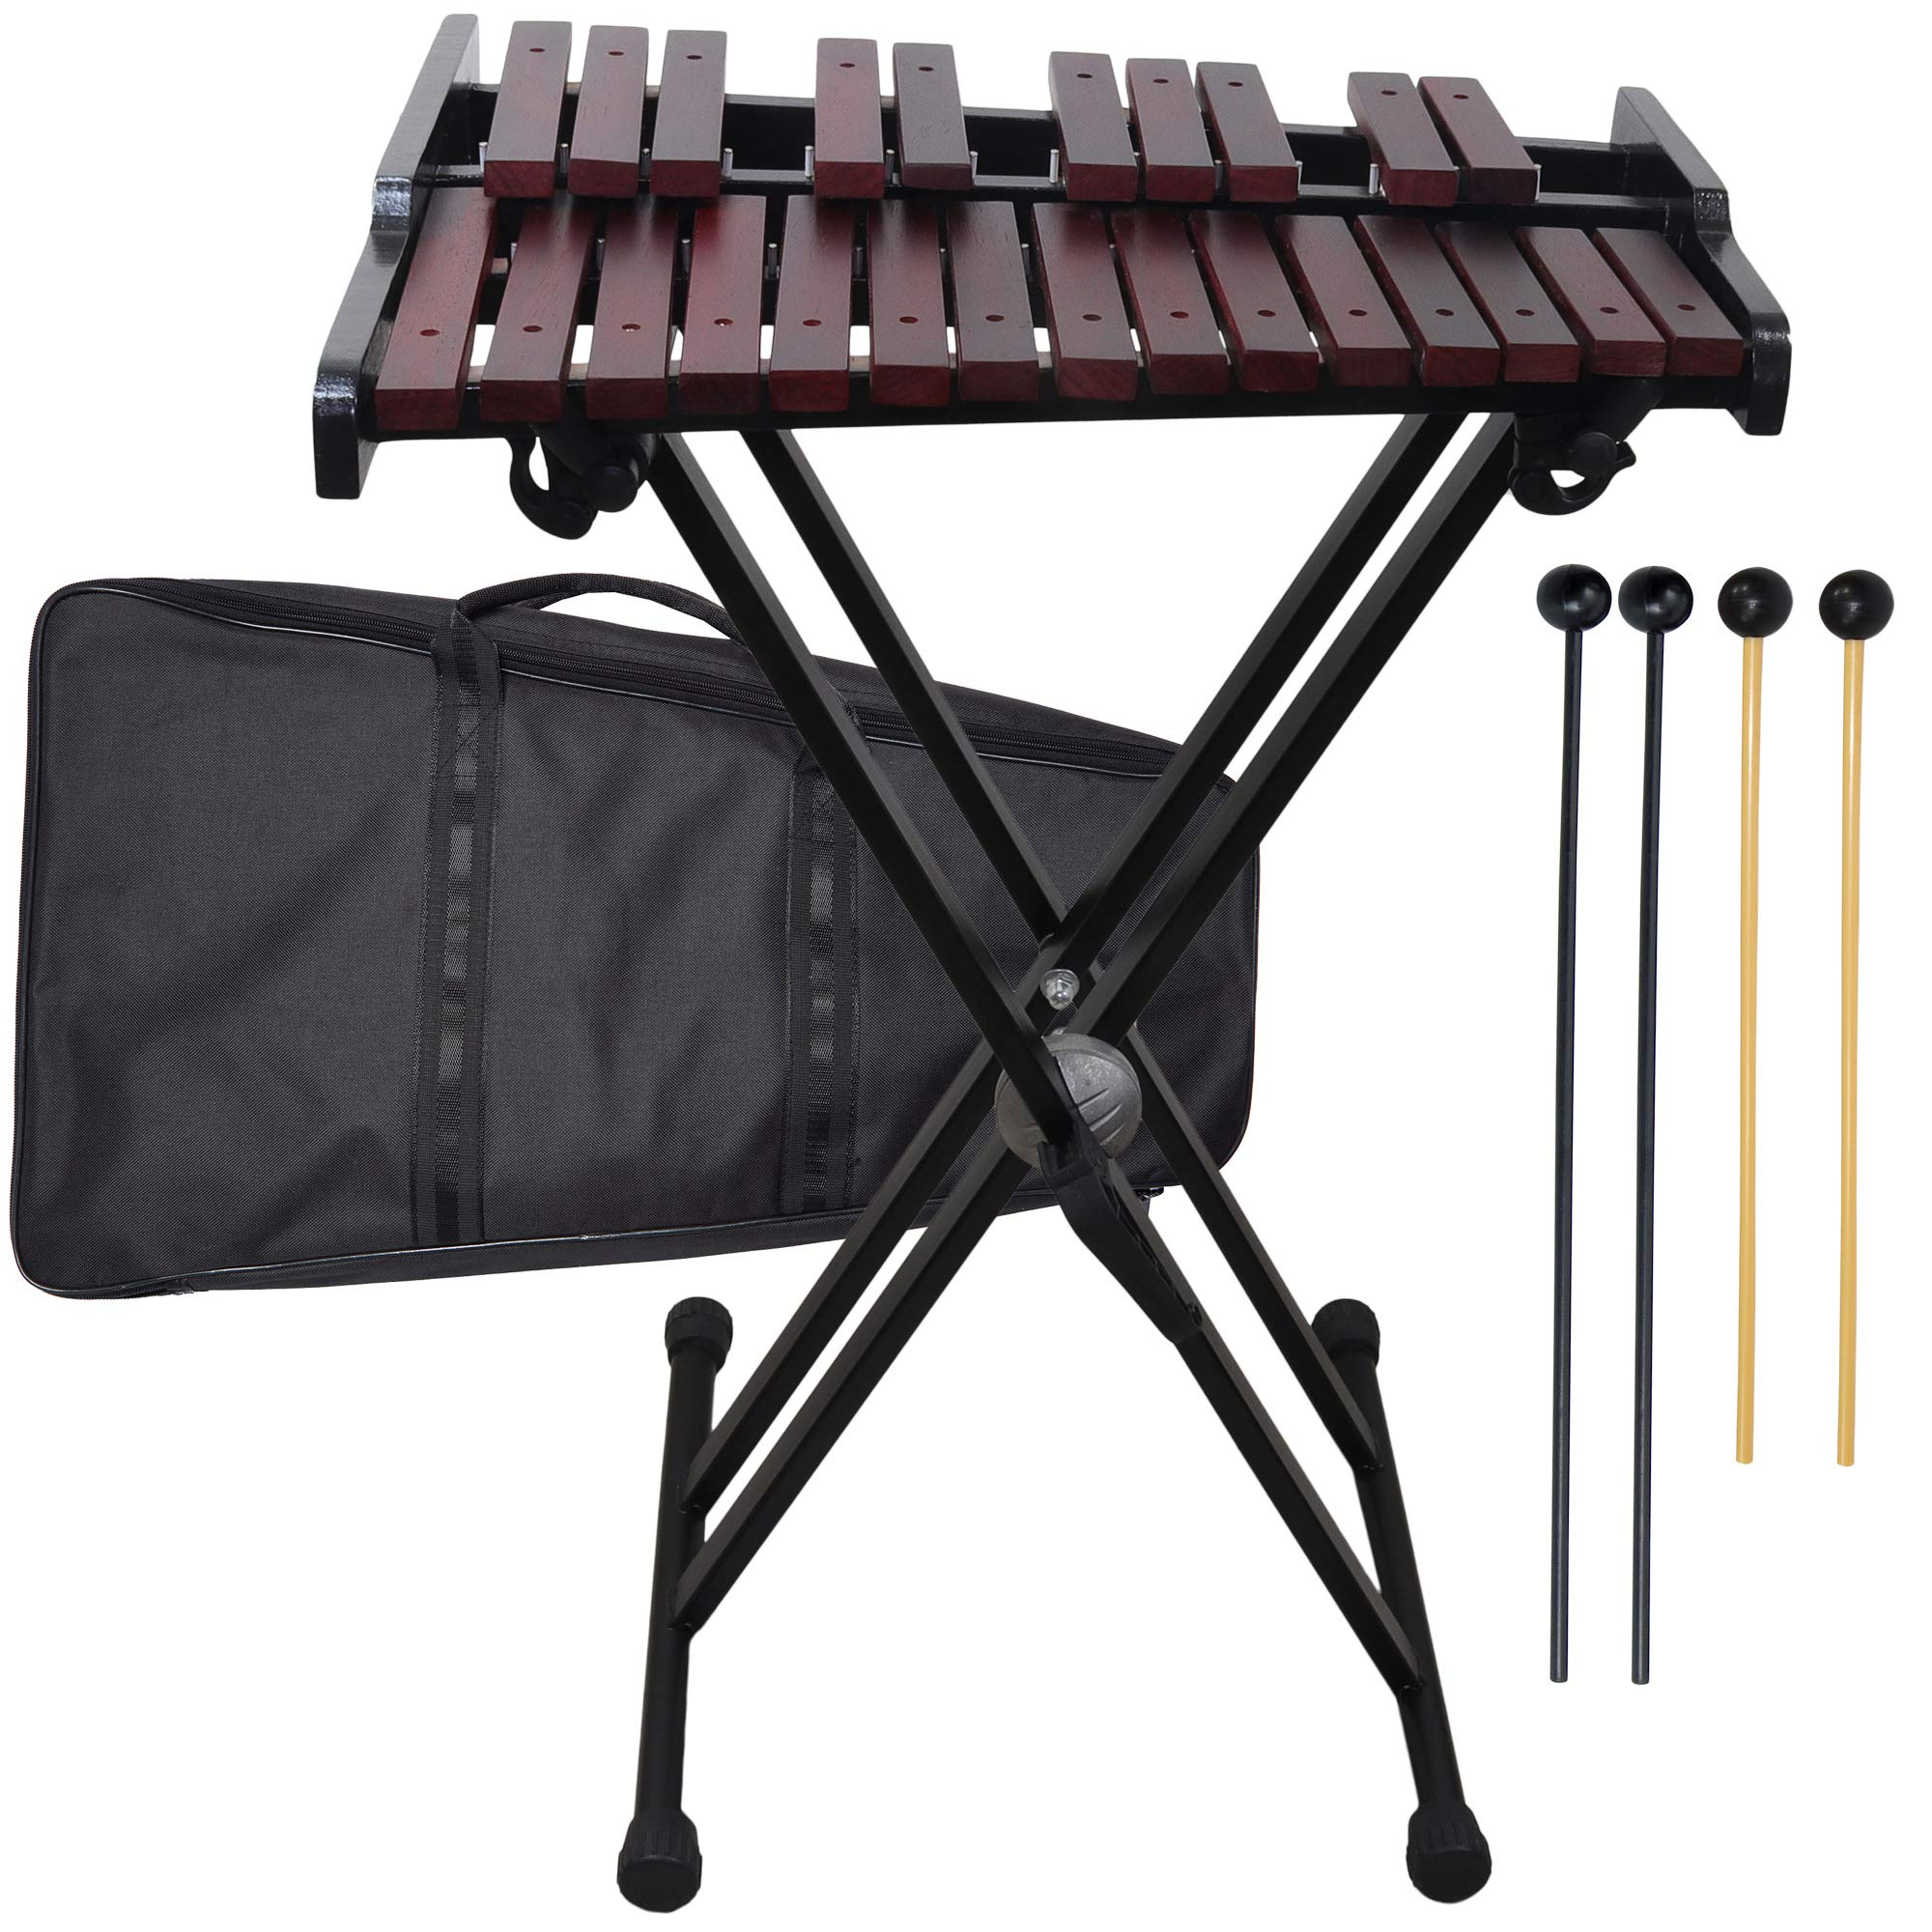 Wooden 25-note Xylophone with stand, 4 Mallets, Carrying bag by inTemenos